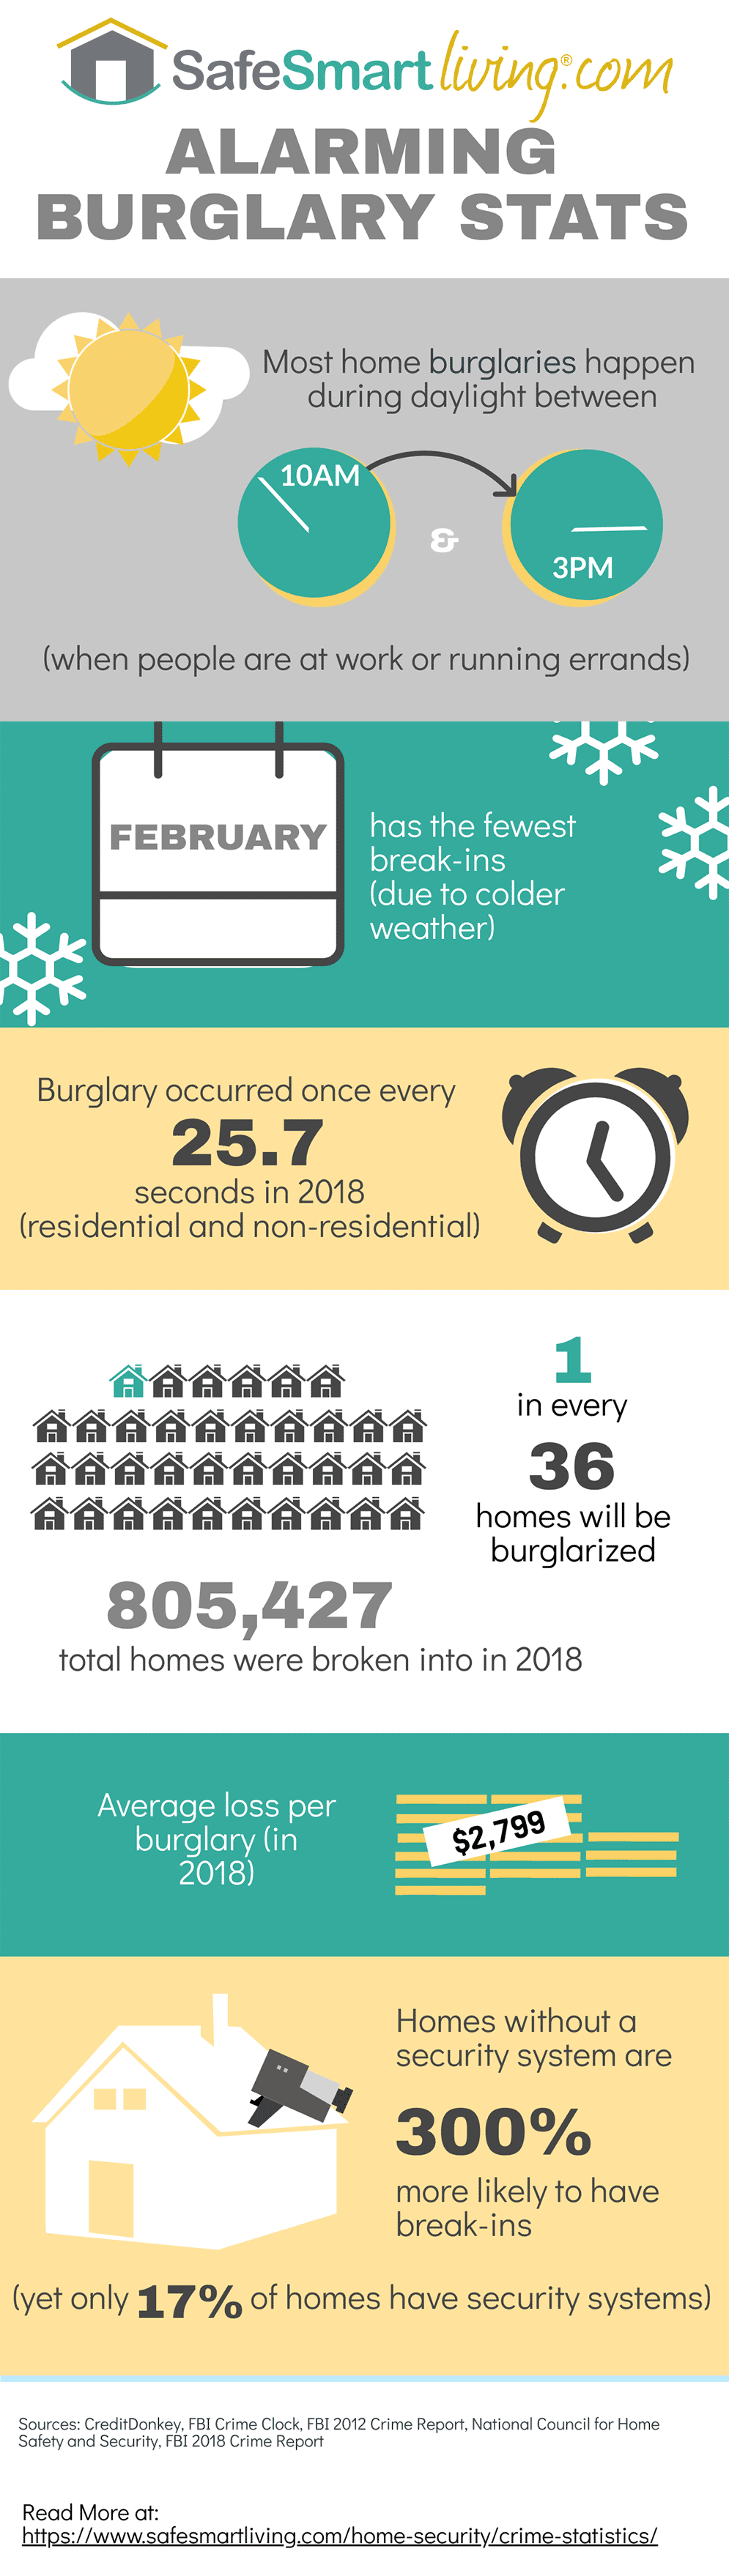 Home Burglary Statistics Infographic